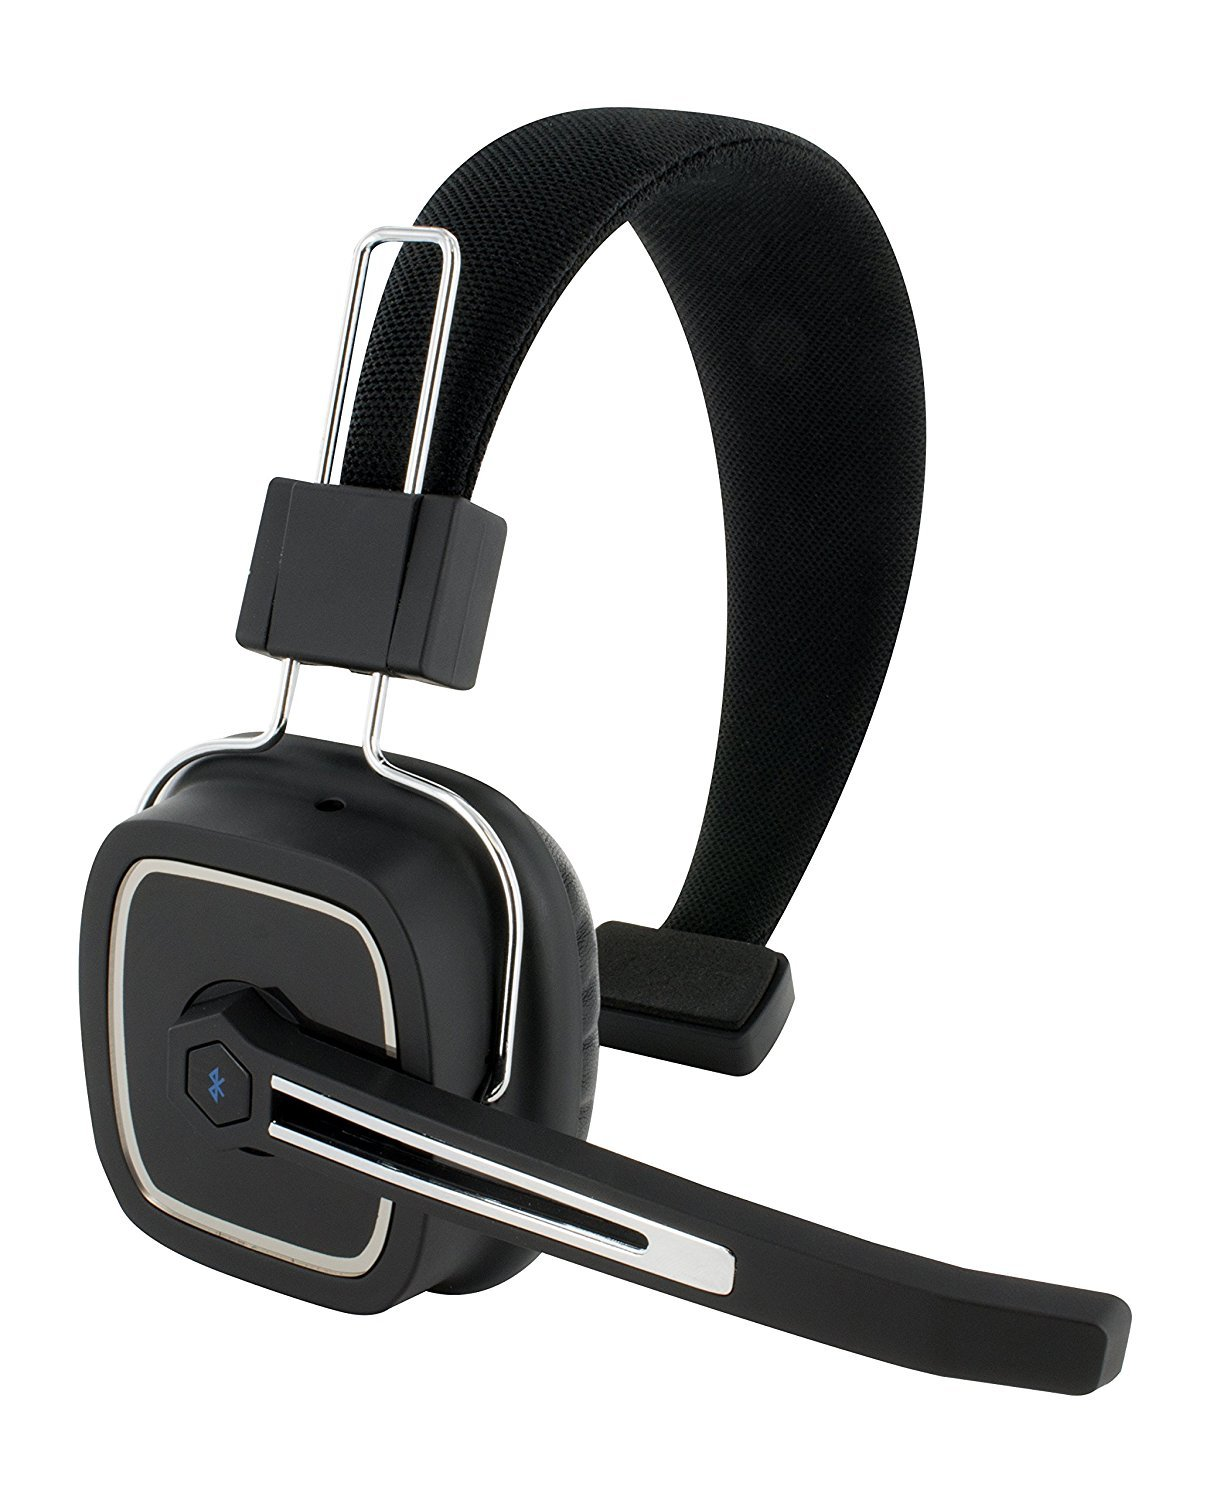 1c961ebb09b Bluetooth Headset with Mic, YAMAY Wireless Over the Head Hands Free in Car  Dual Pairing